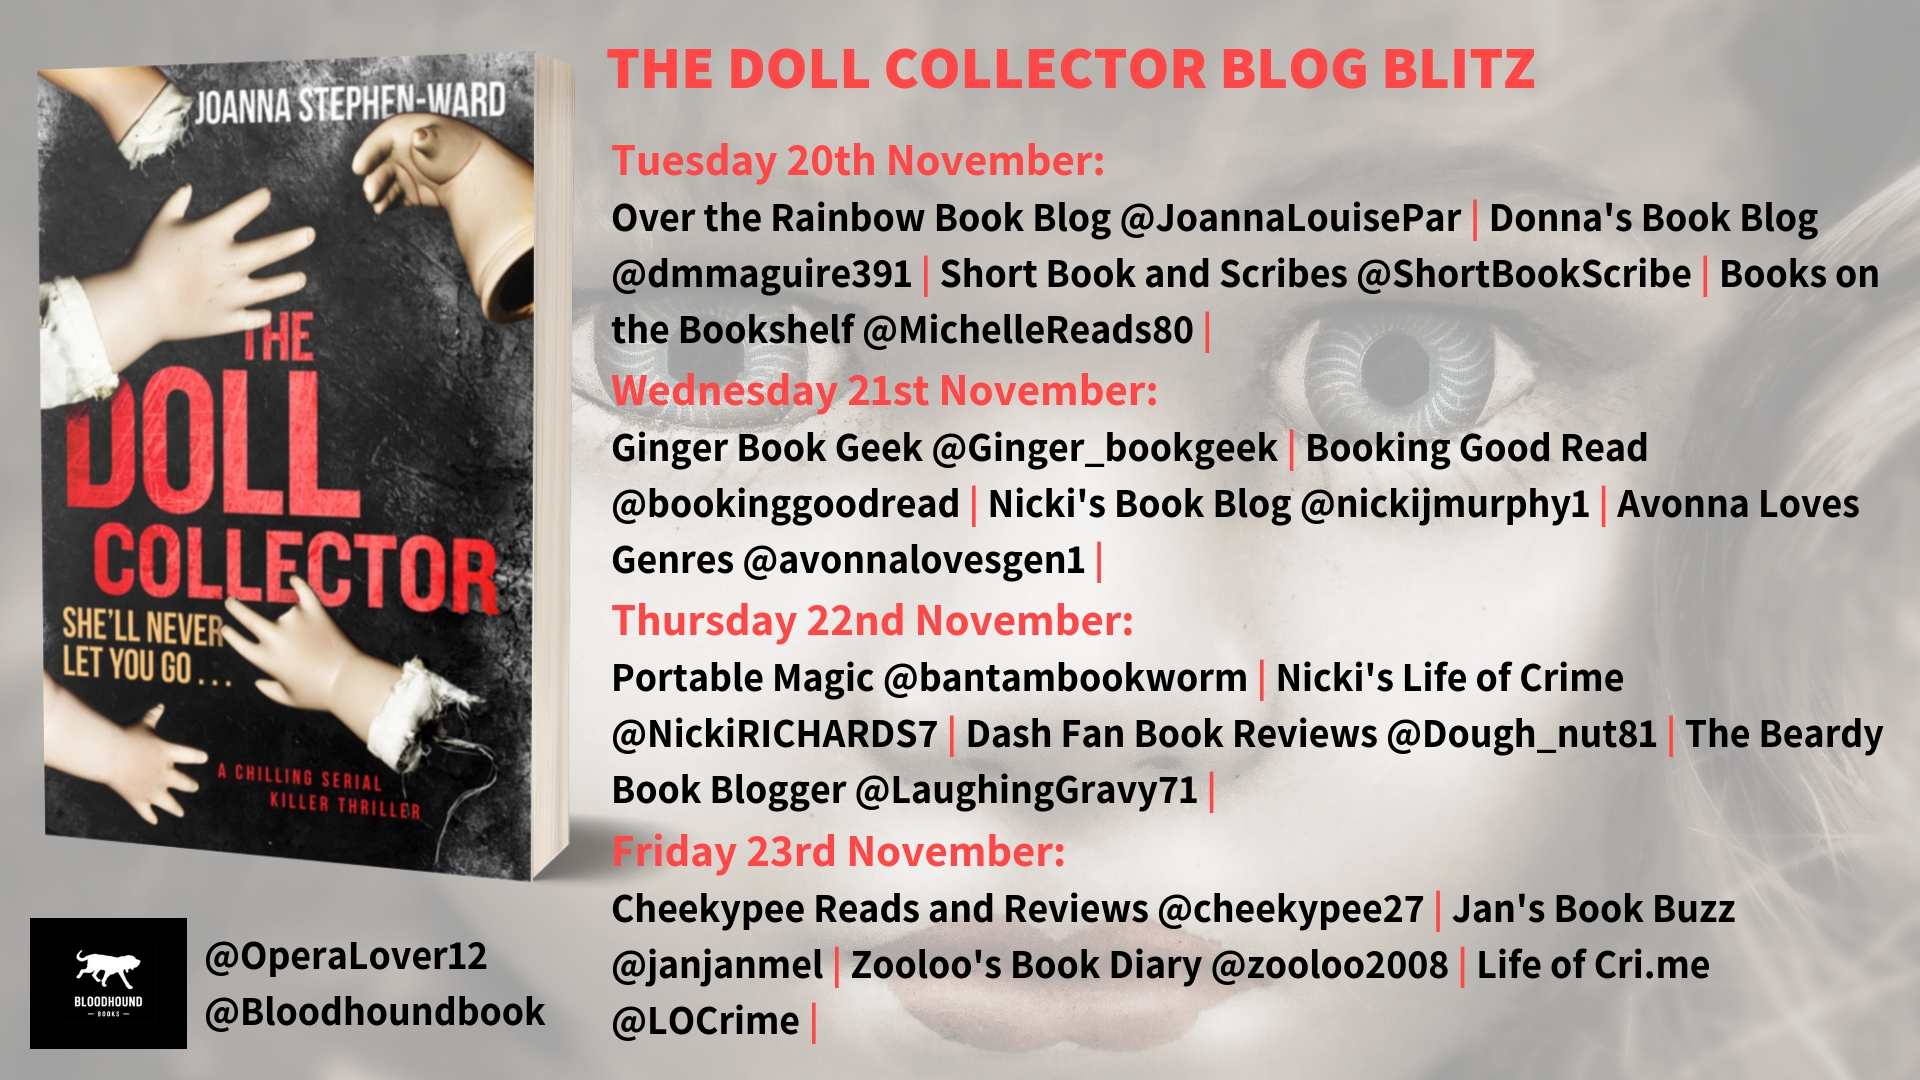 ***#GuestPost by Joanna Stephen-Ward, author of The Doll Collector @OperaLover12 @bloodhoundbook